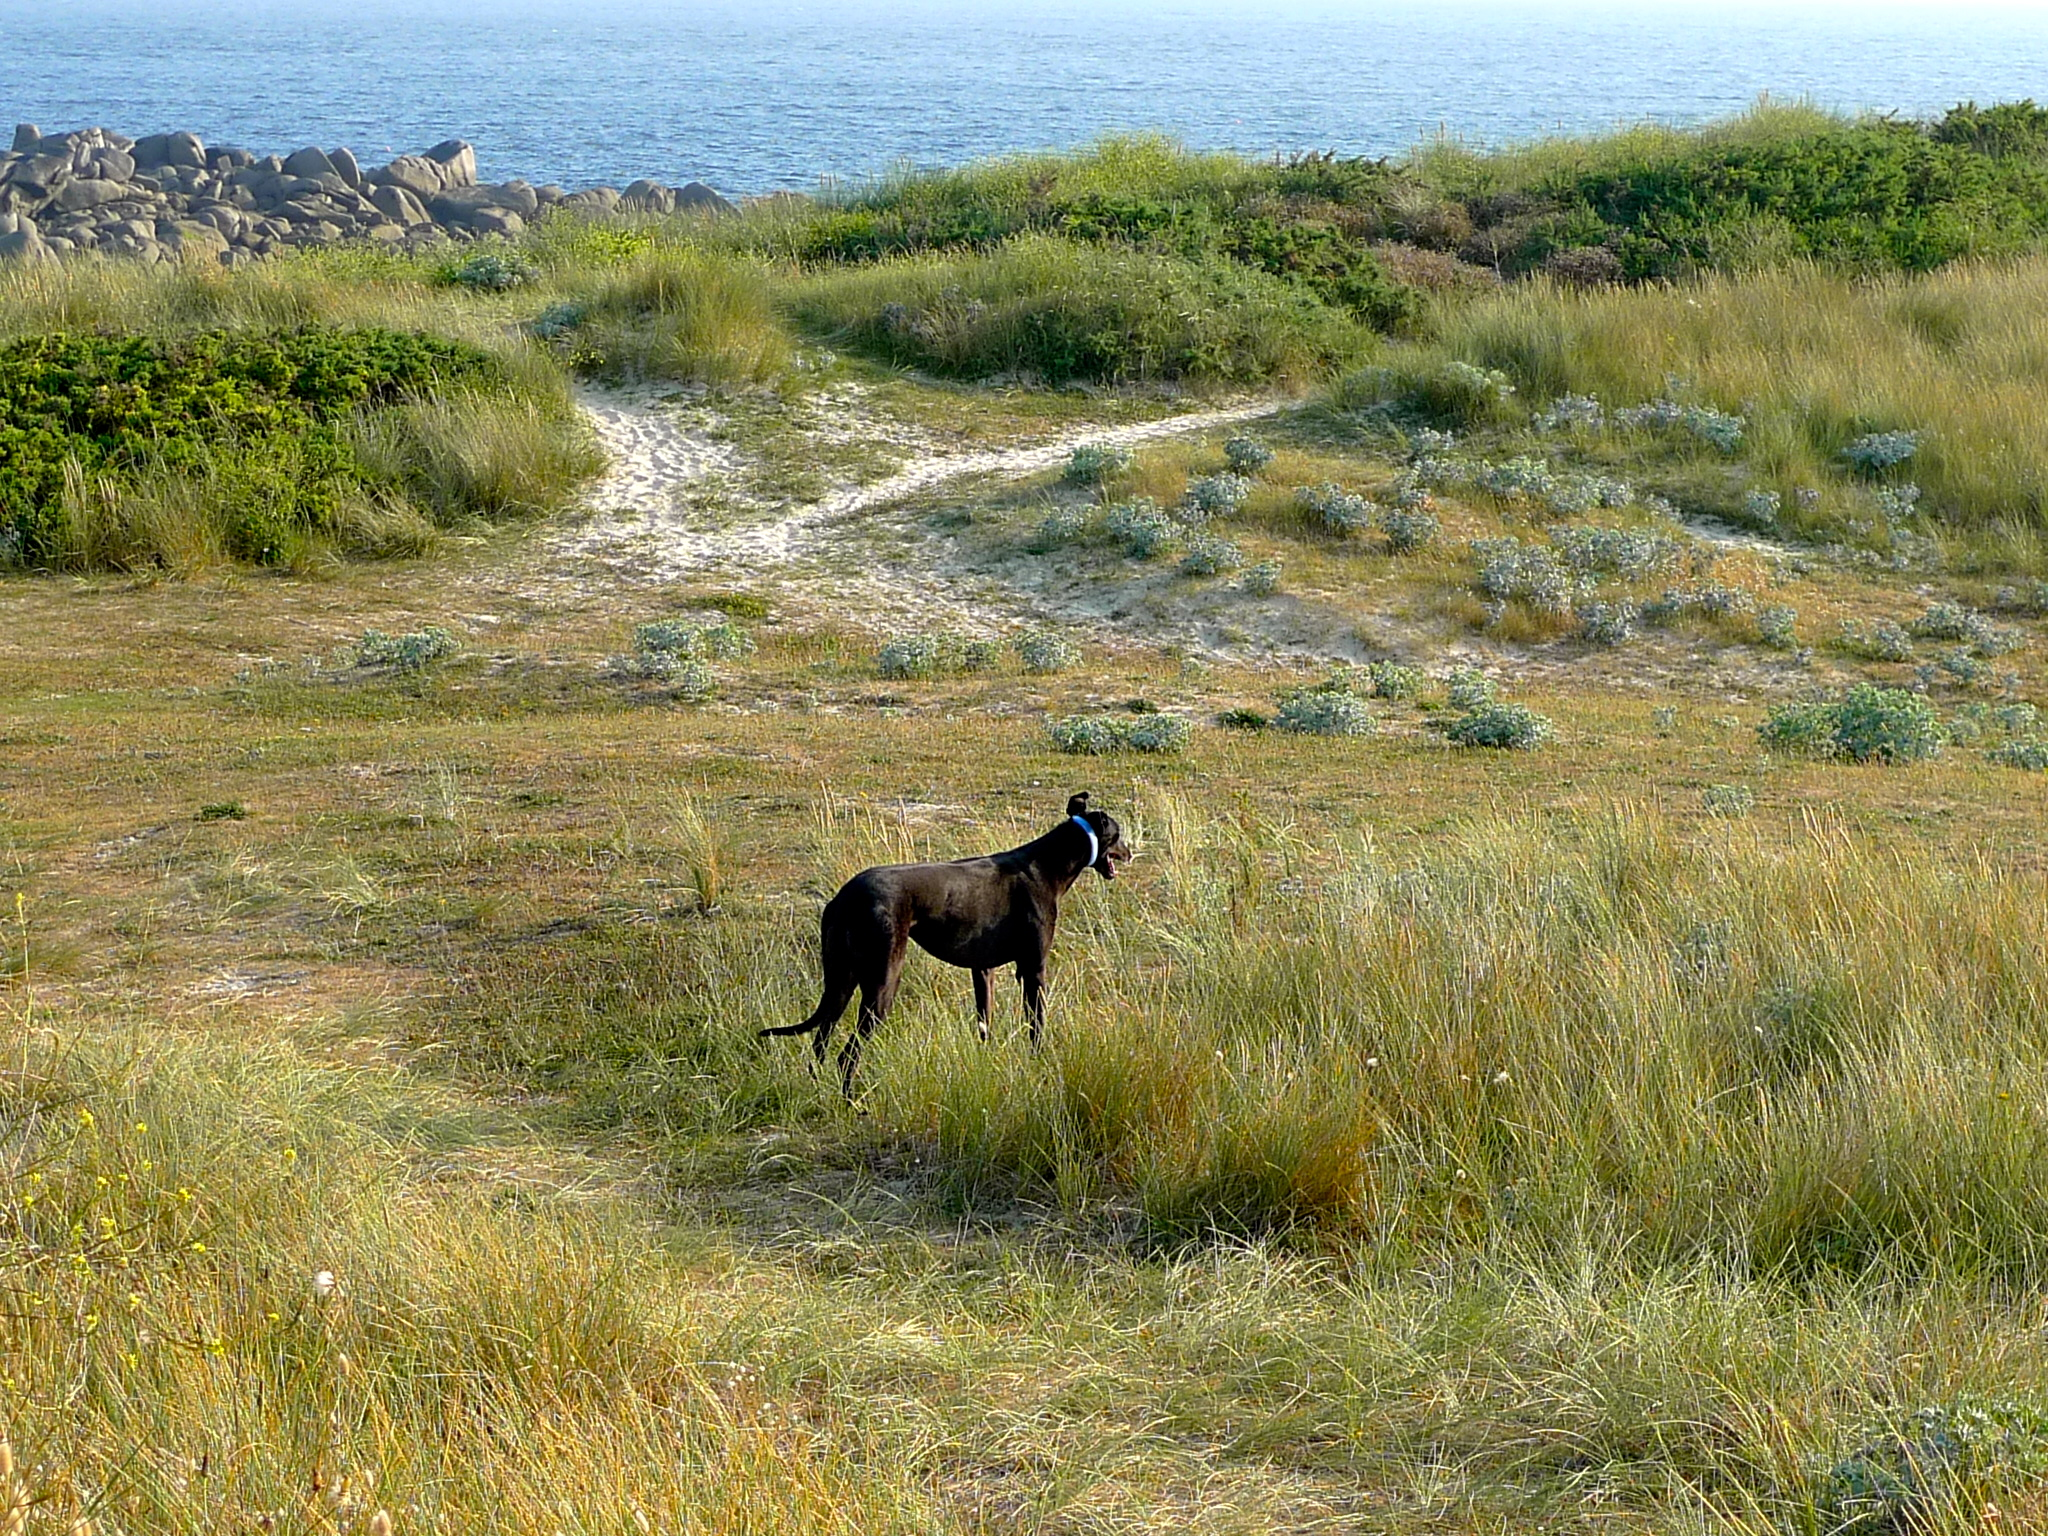 The dog on the beach in France